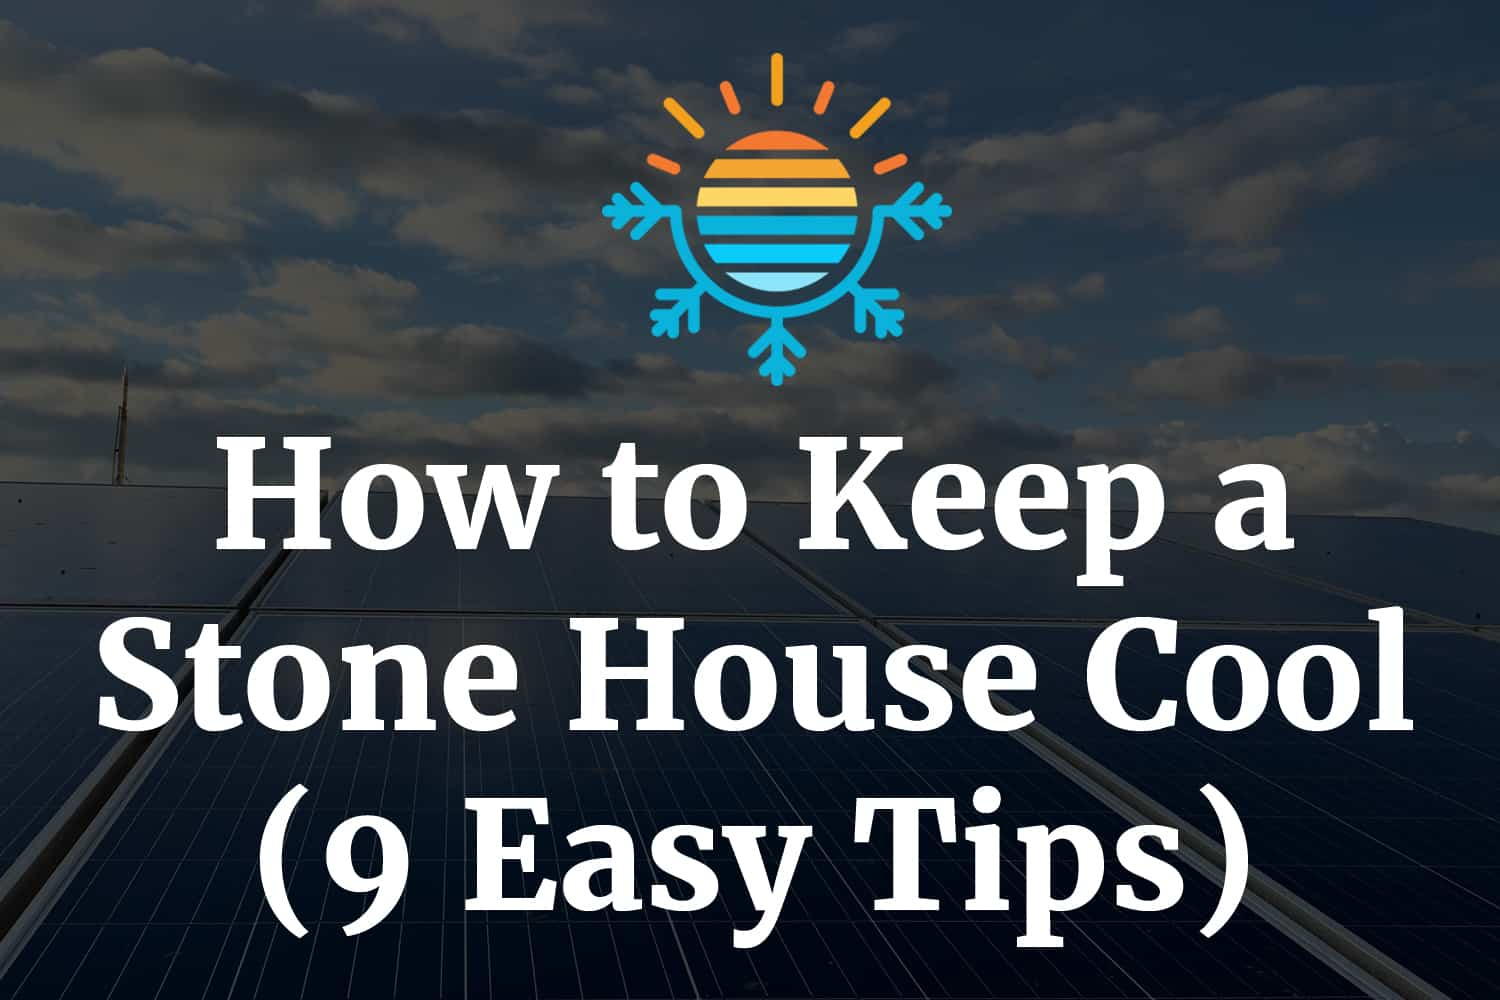 How to keep a stone house cool